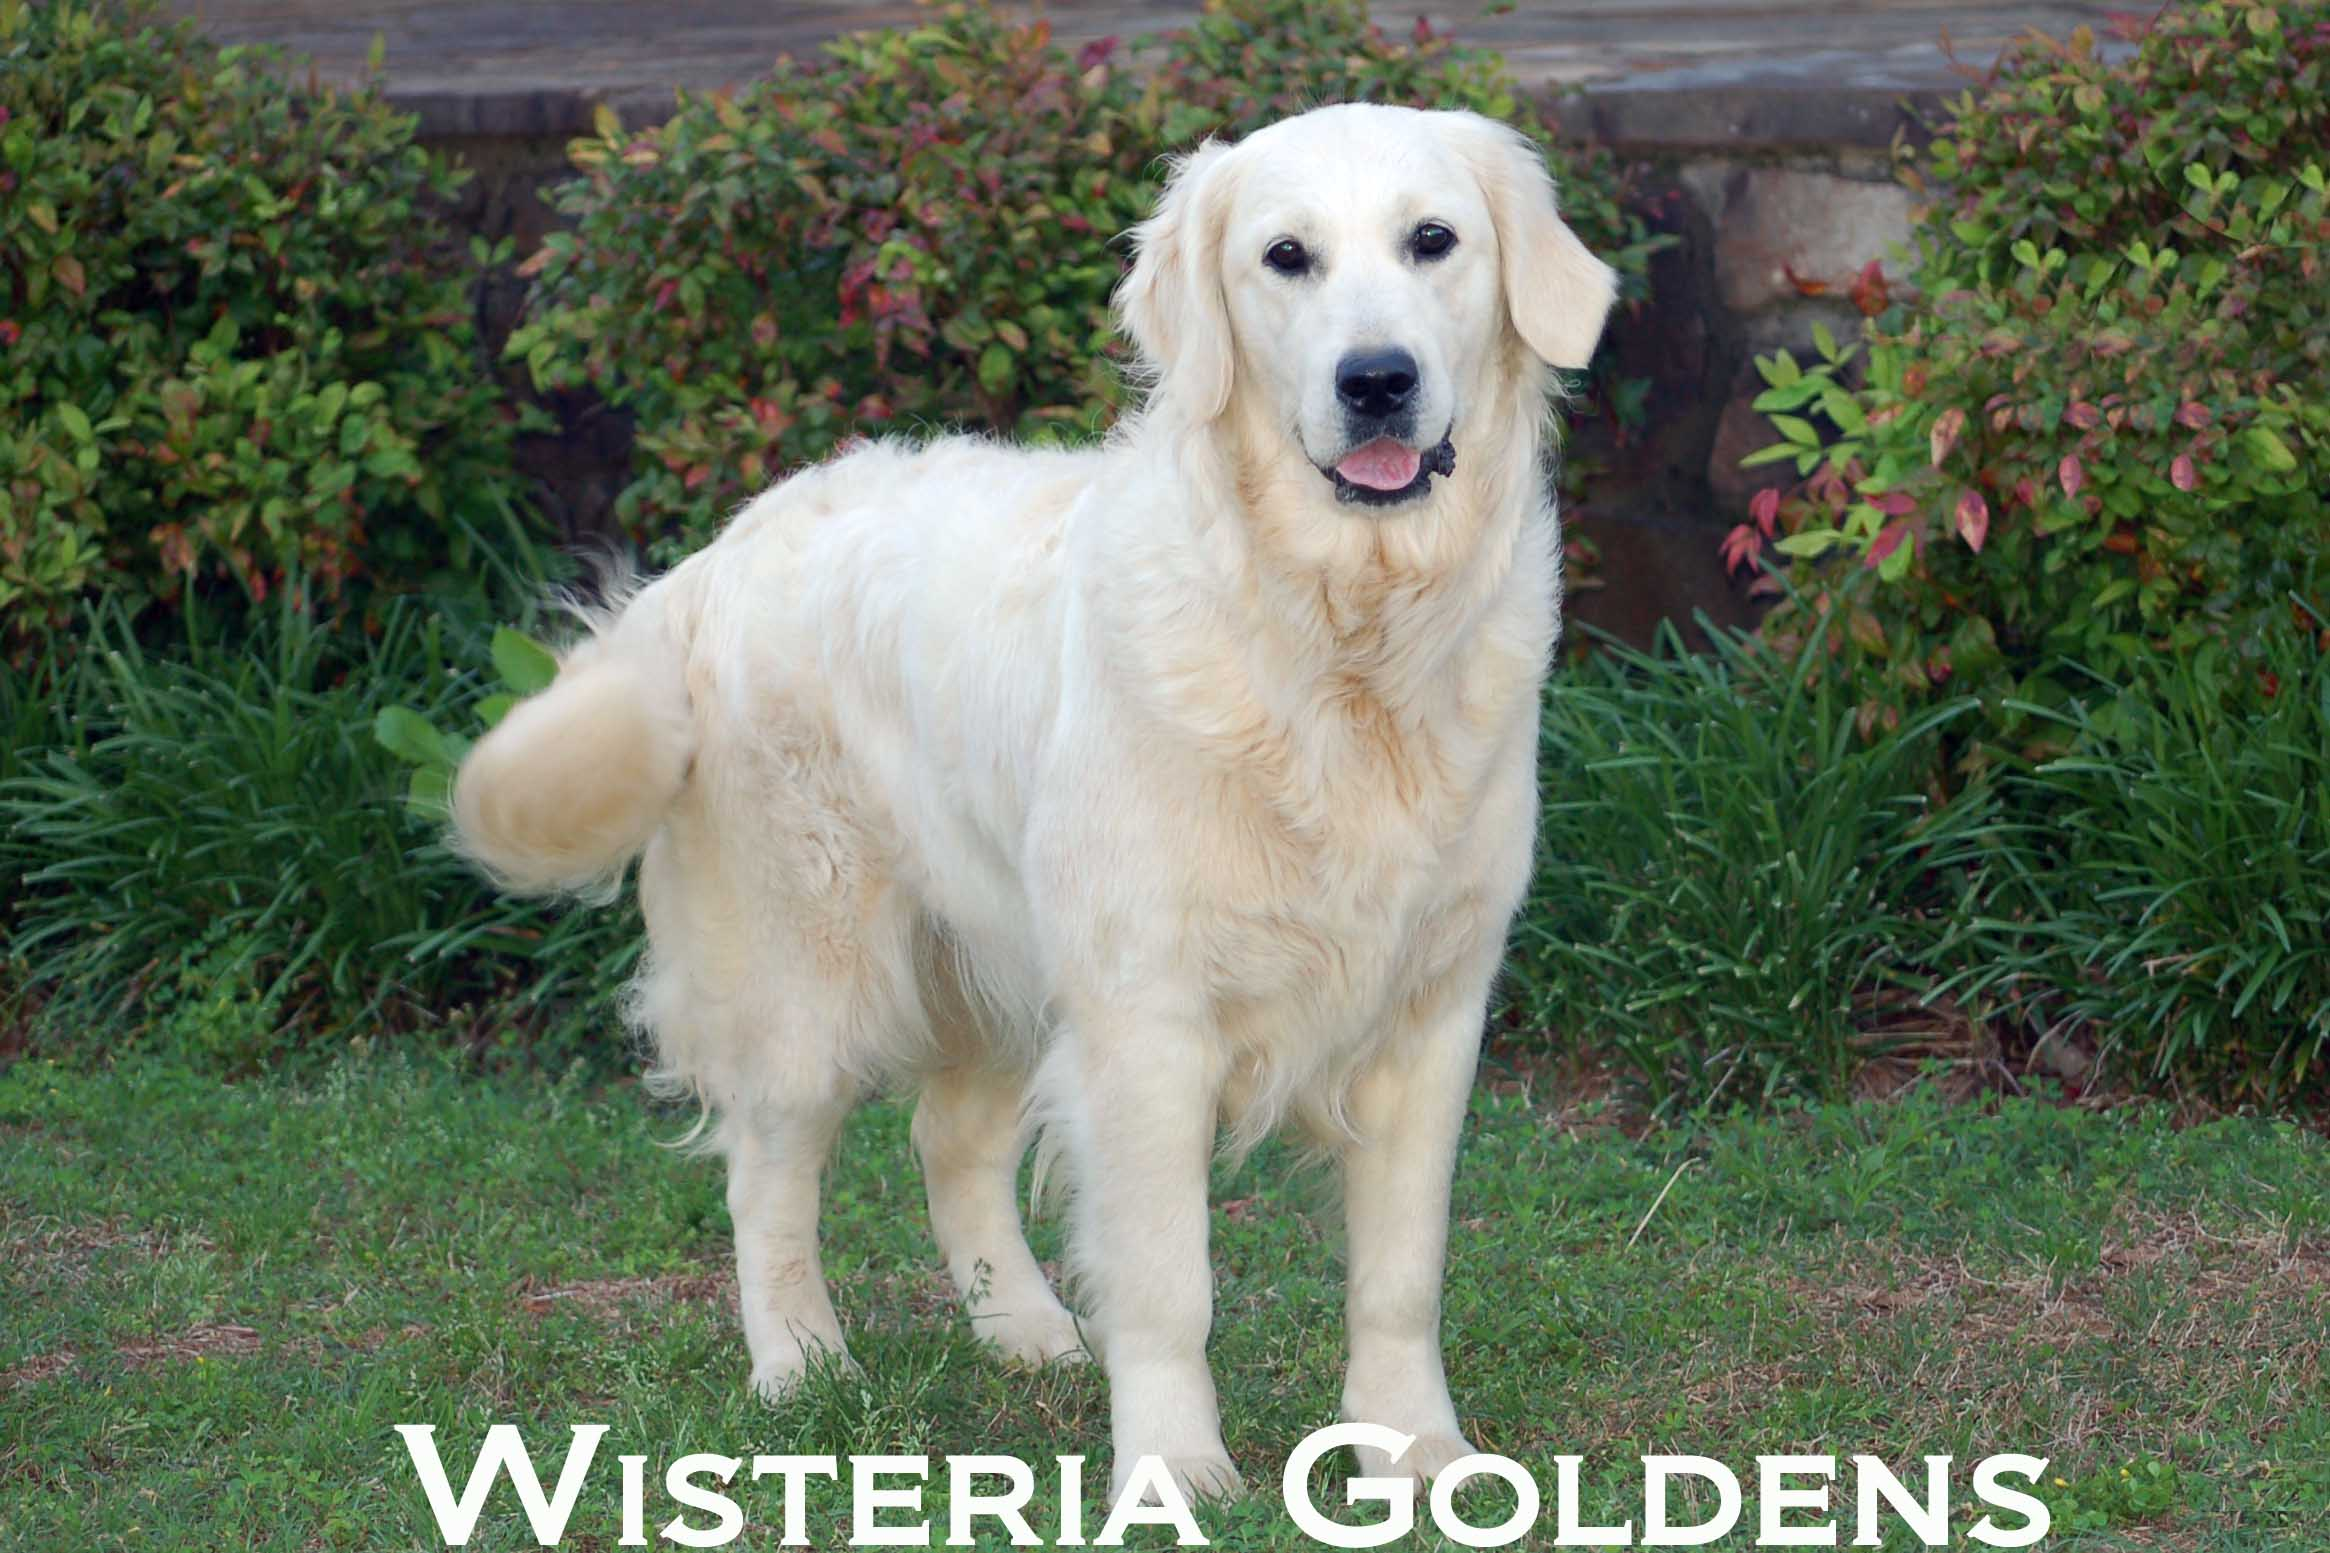 Zoey-0012-zoey-full-english-creme-golden-retriever-wisteria-goldens